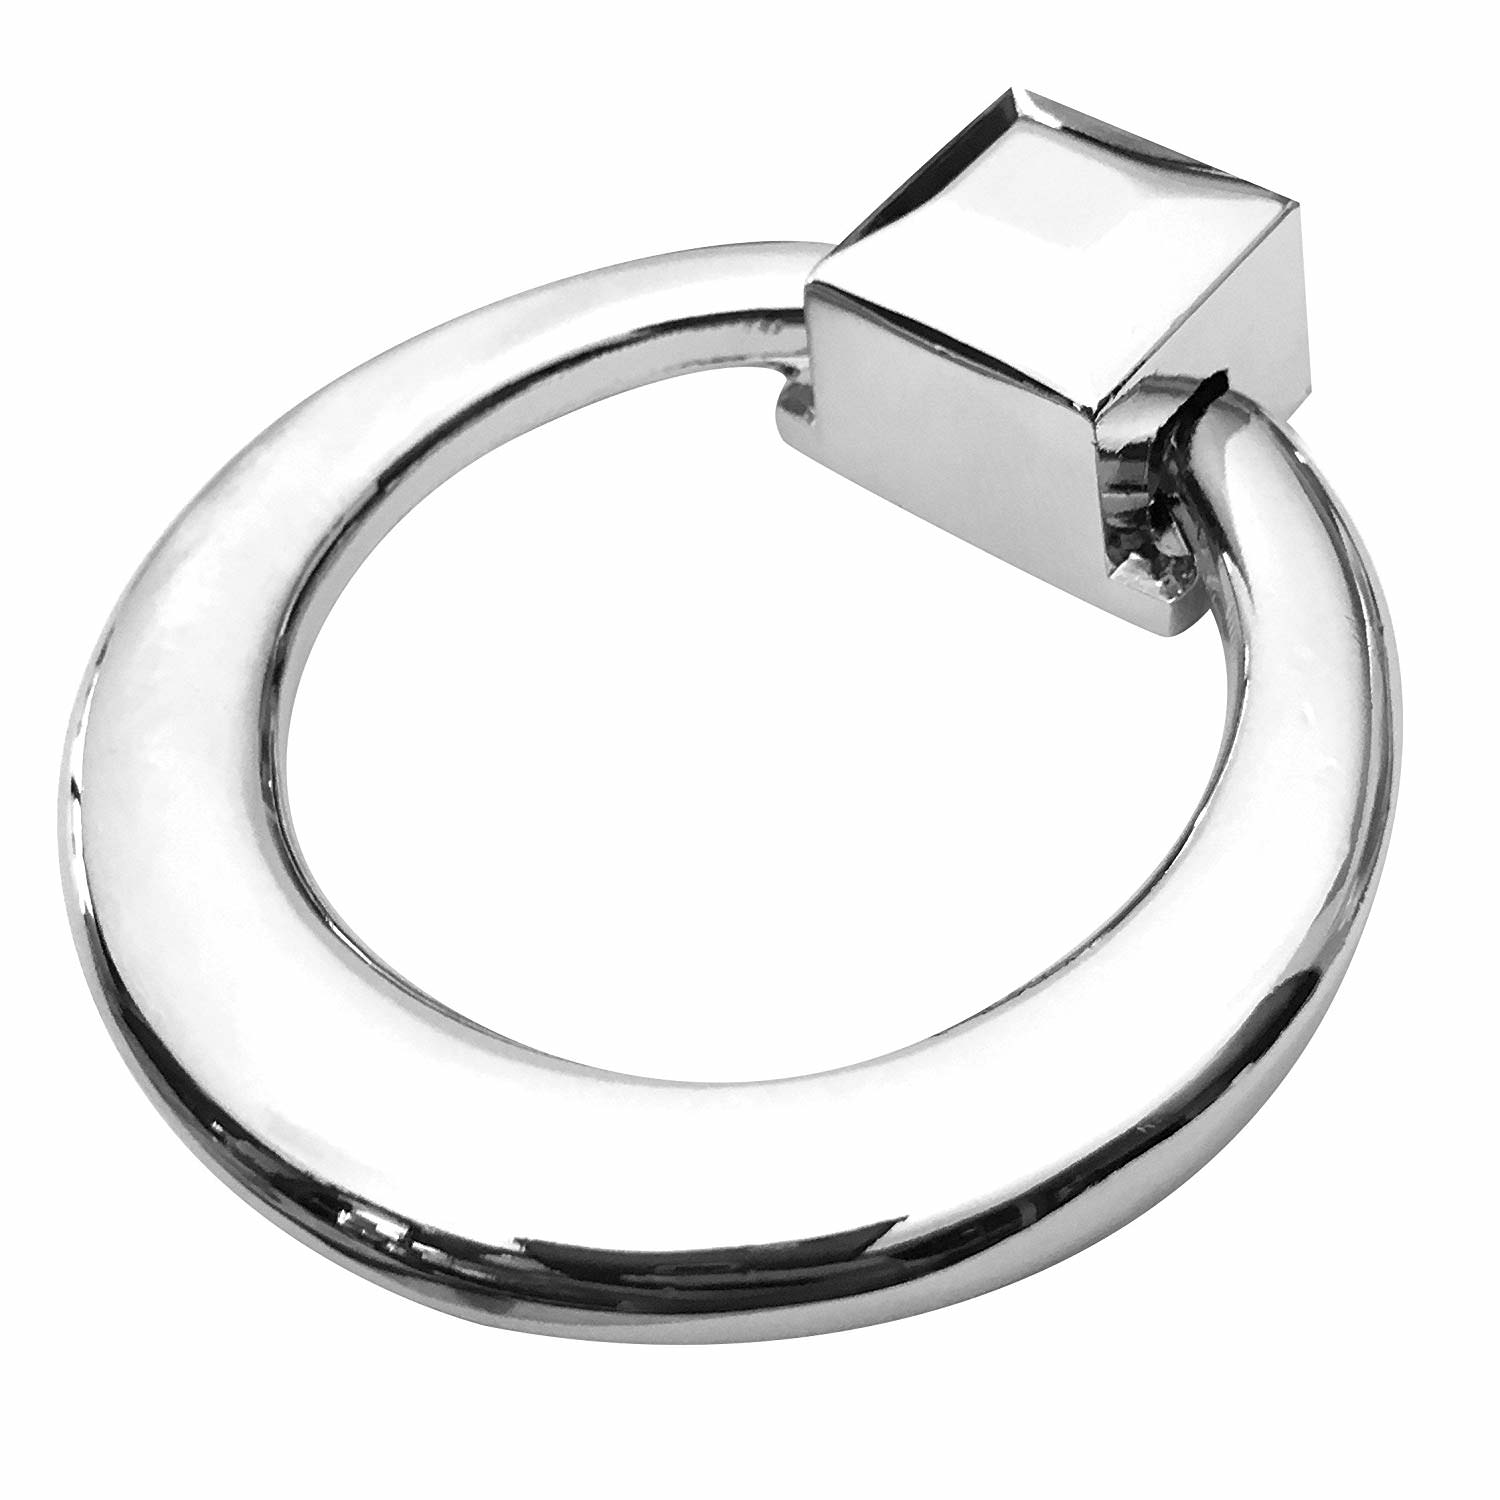 Southern Hills Chrome Ring Pulls Pack Of 5 Drawer Pulls Cabinet Door Pulls Cabinet Drawer Pulls Polished Chrome Ring Pulls Perfect For Kitchen And Bath Cabinets And Furniture Shkm3282 Chr 5 Walmart Com